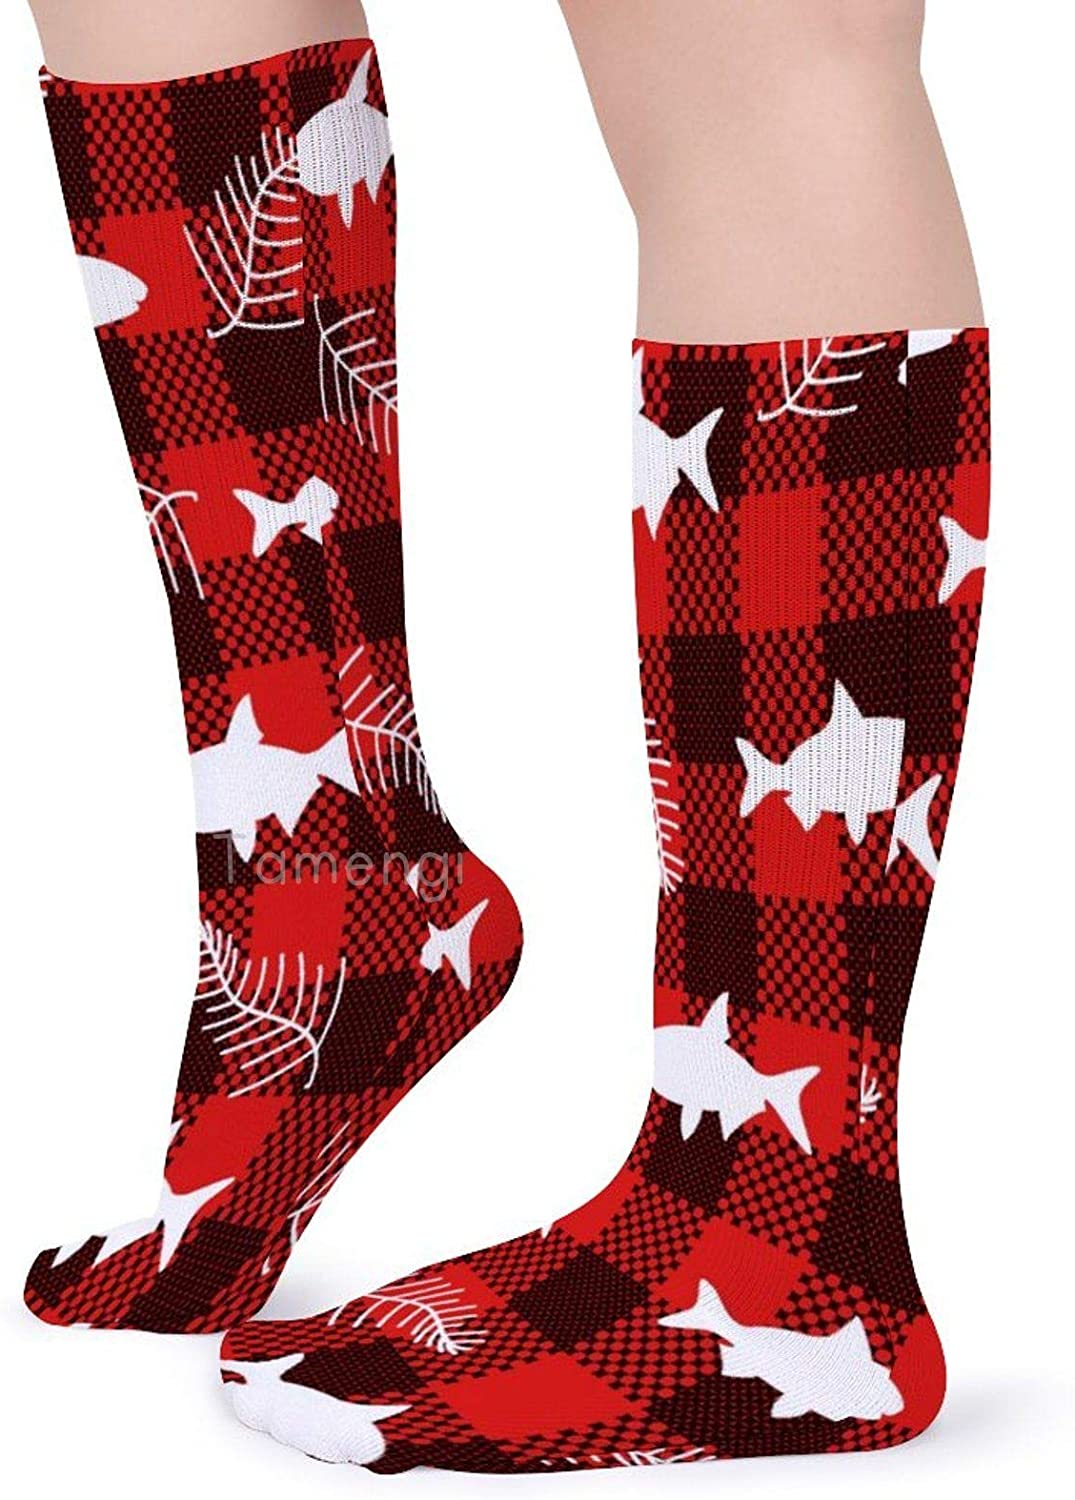 Classics Personalized Long Tube Stockings Buffalo Plaid Fish Leaves Crew Socks 15.7inch One Size Athletic Stockings for Men Women